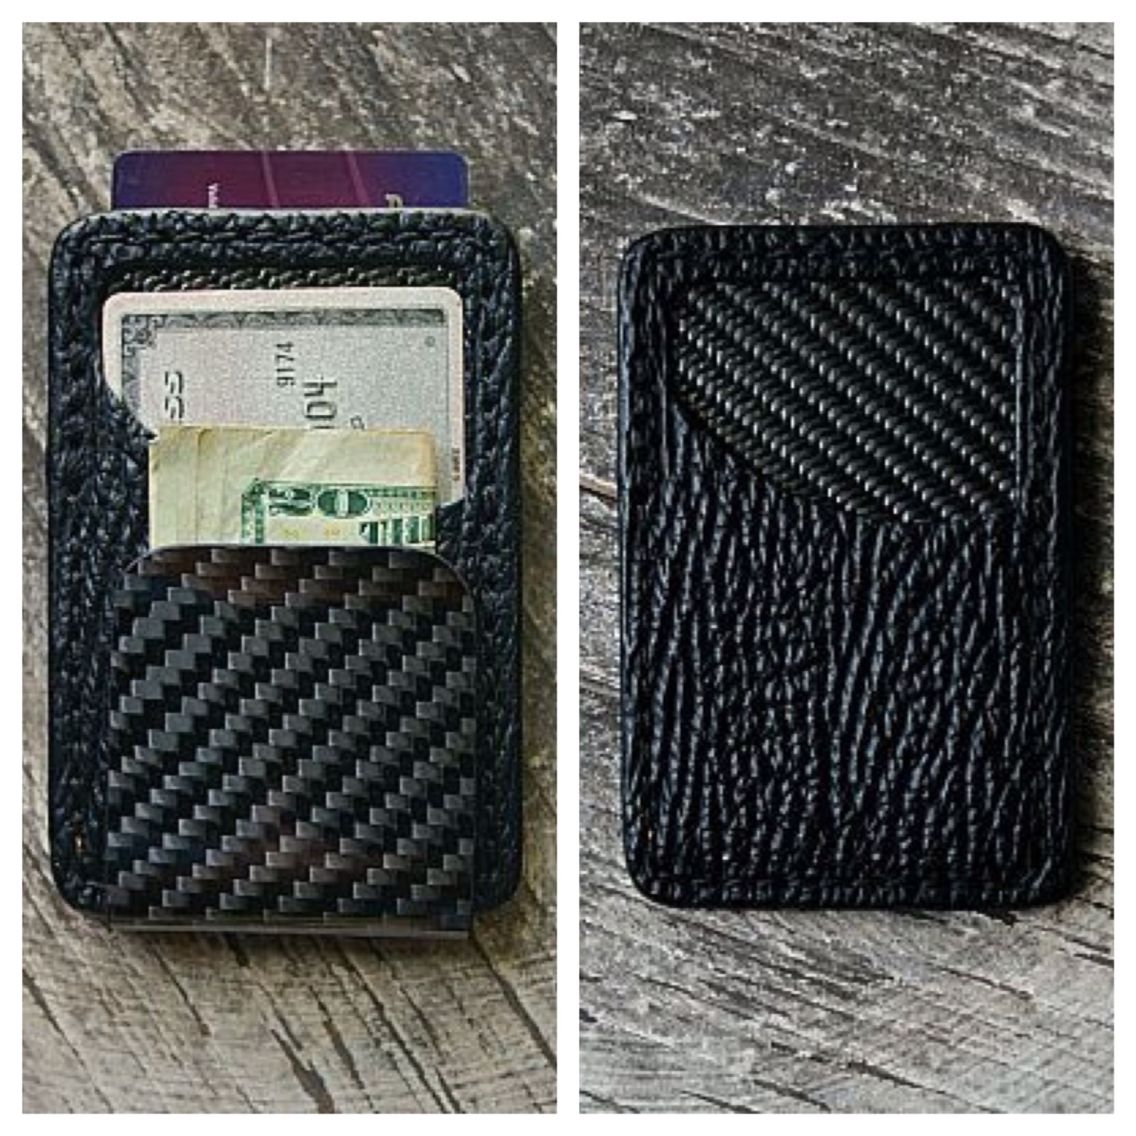 Shark skin carbon fiber money clip wallet by rcfibers and vvego business cards shark skin carbon fiber money clip wallet by rcfibers and vvego magicingreecefo Gallery